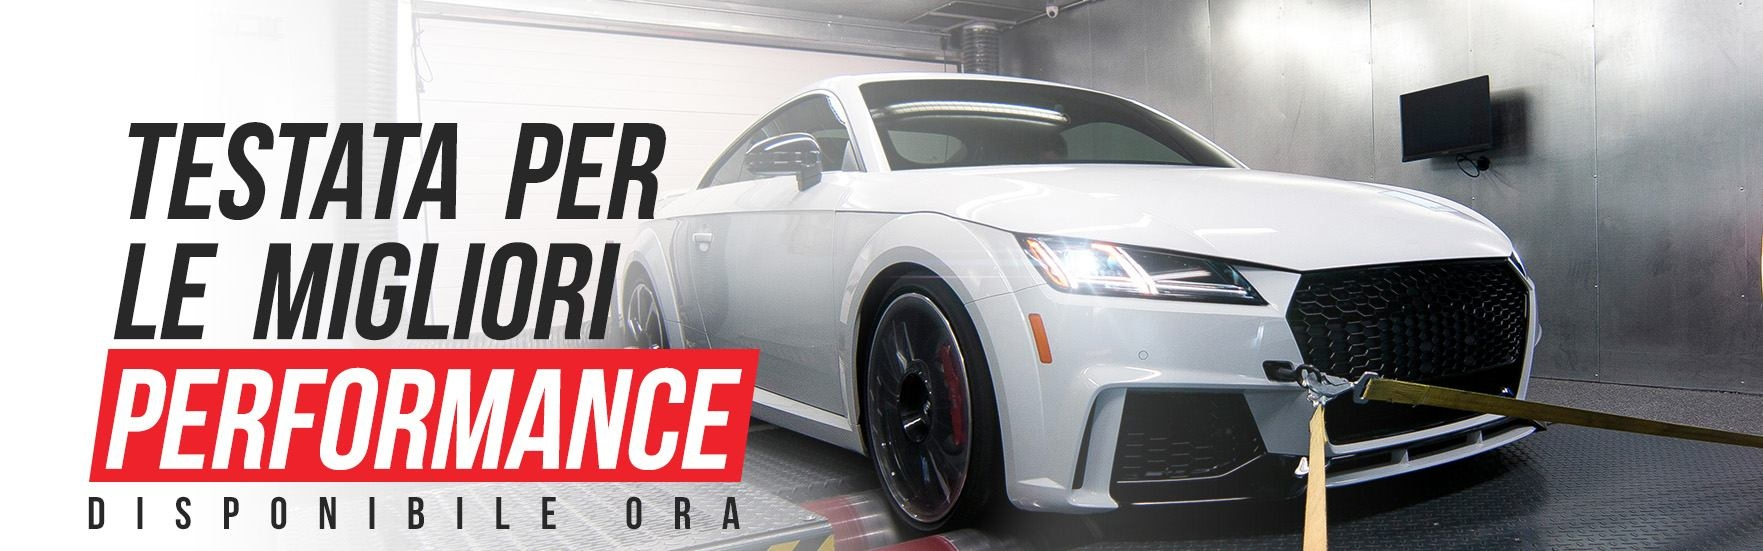 SS (@superstoretuning) Cover Image